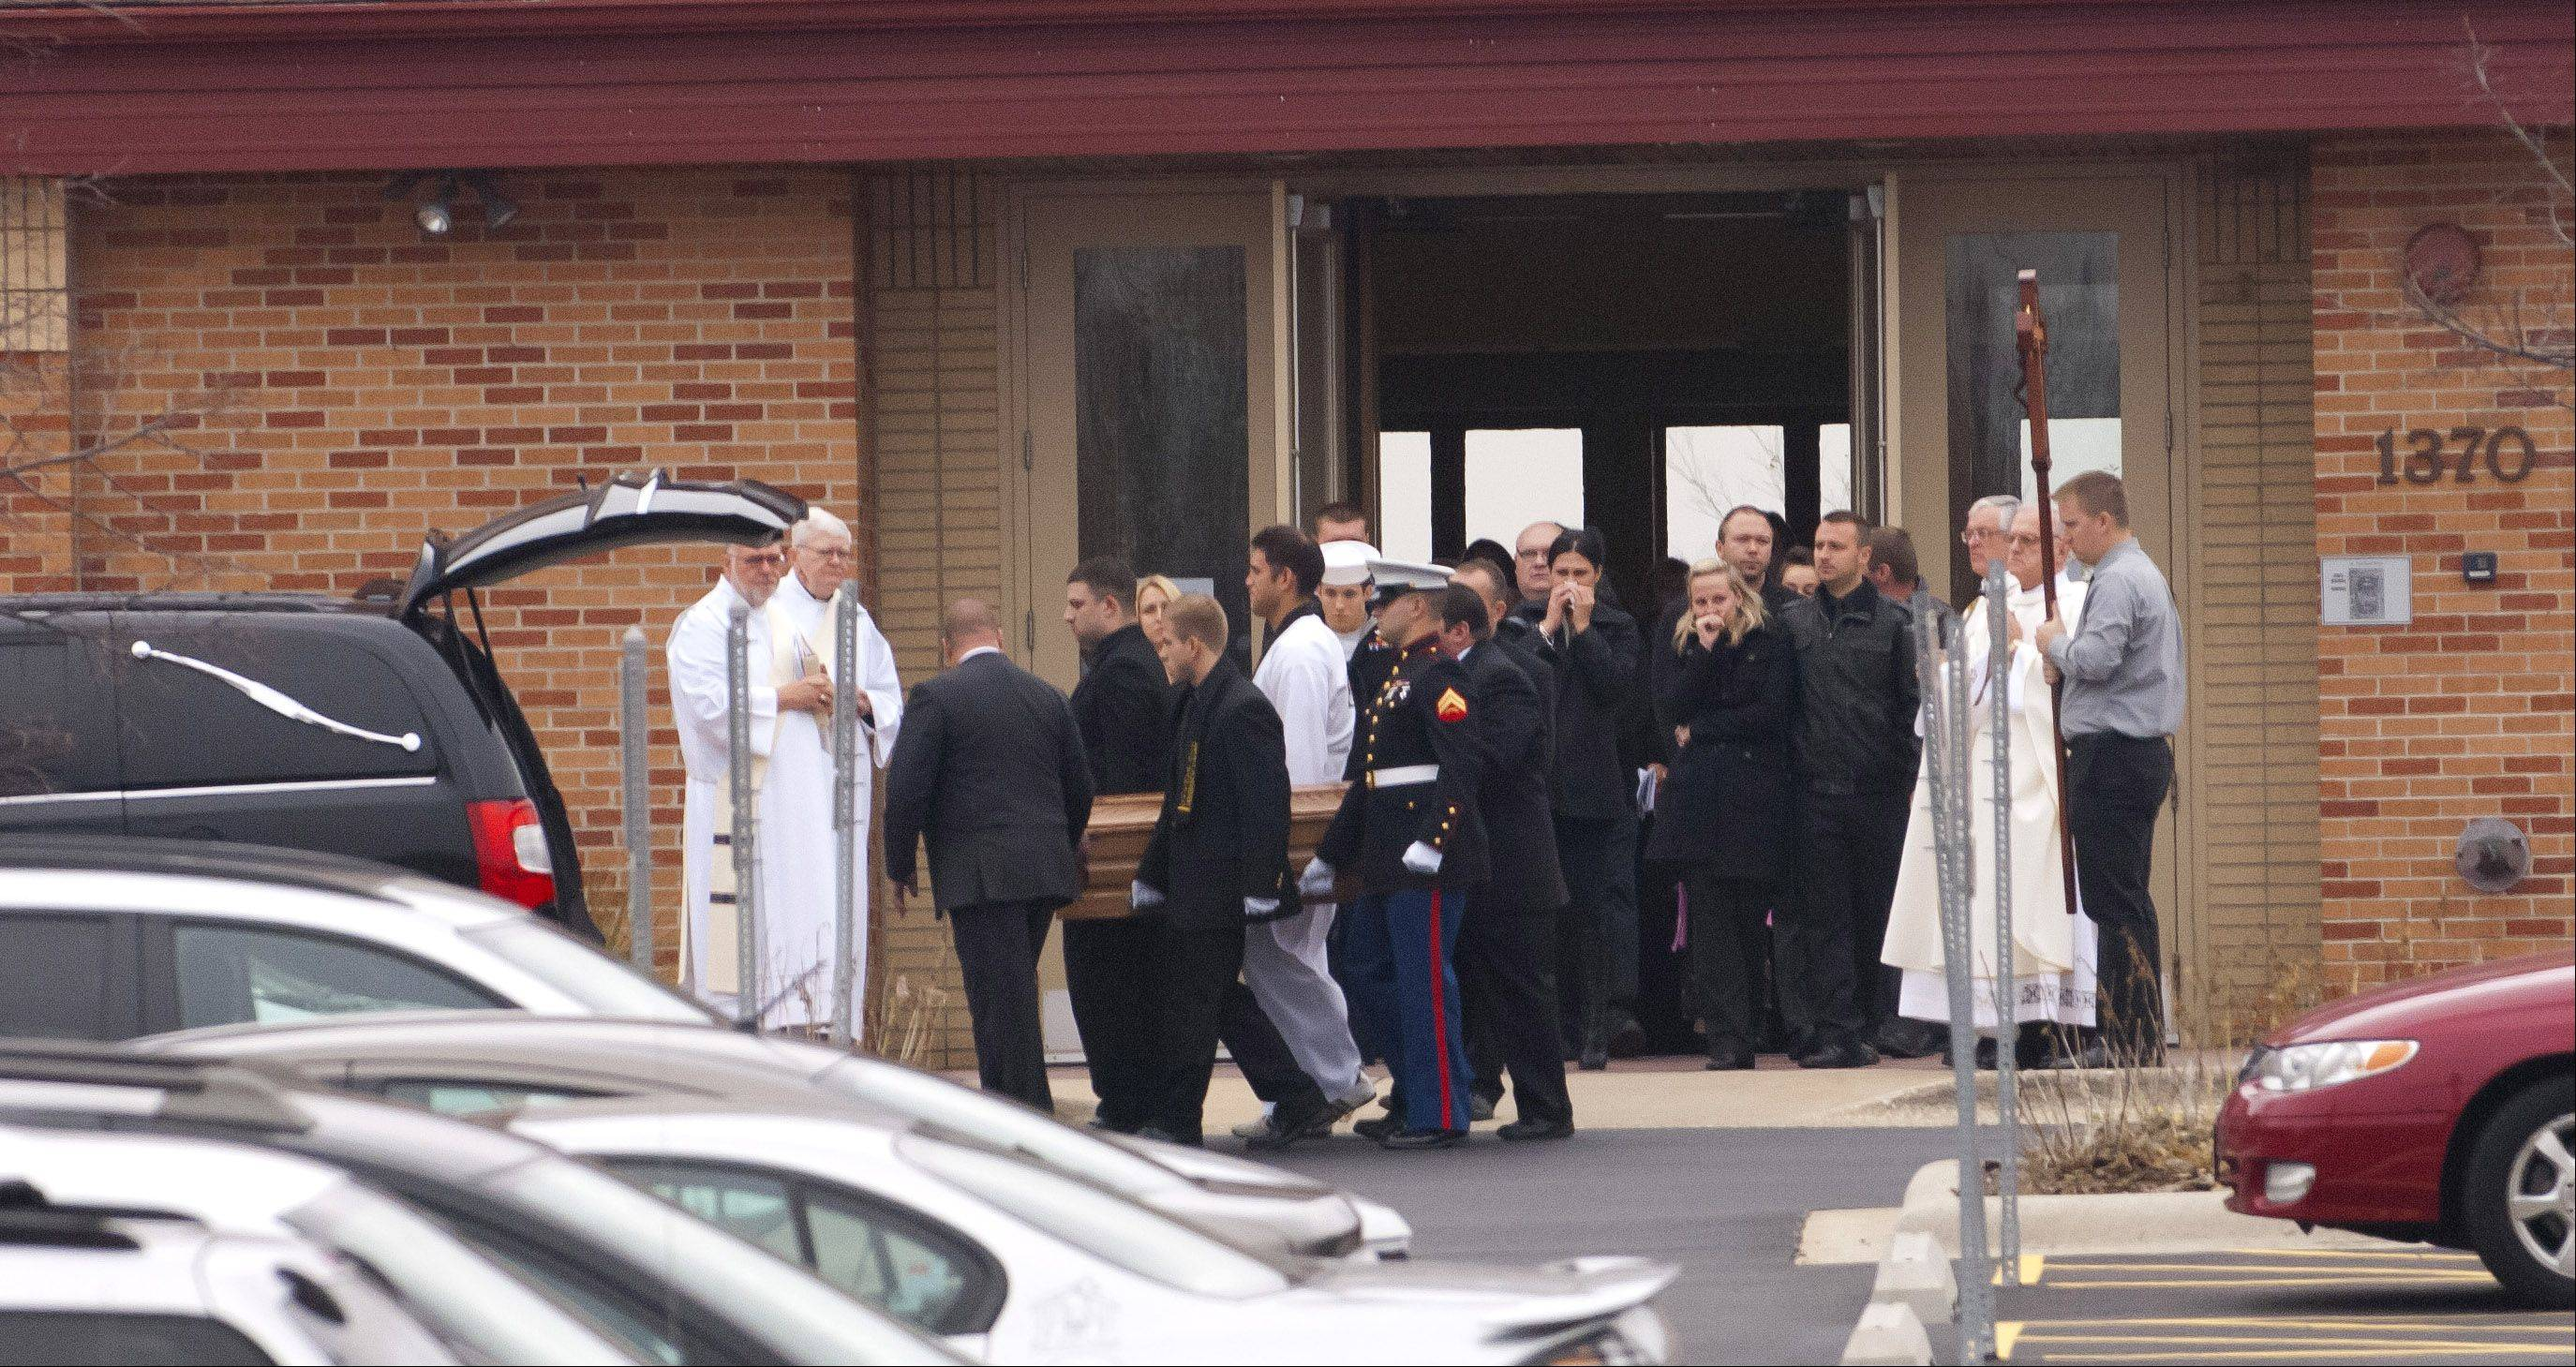 Mourners paid their final respects to 7-year-old Justin Plackowski Tuesday morning at St. Elizabeth Seton Catholic Church in Naperville.